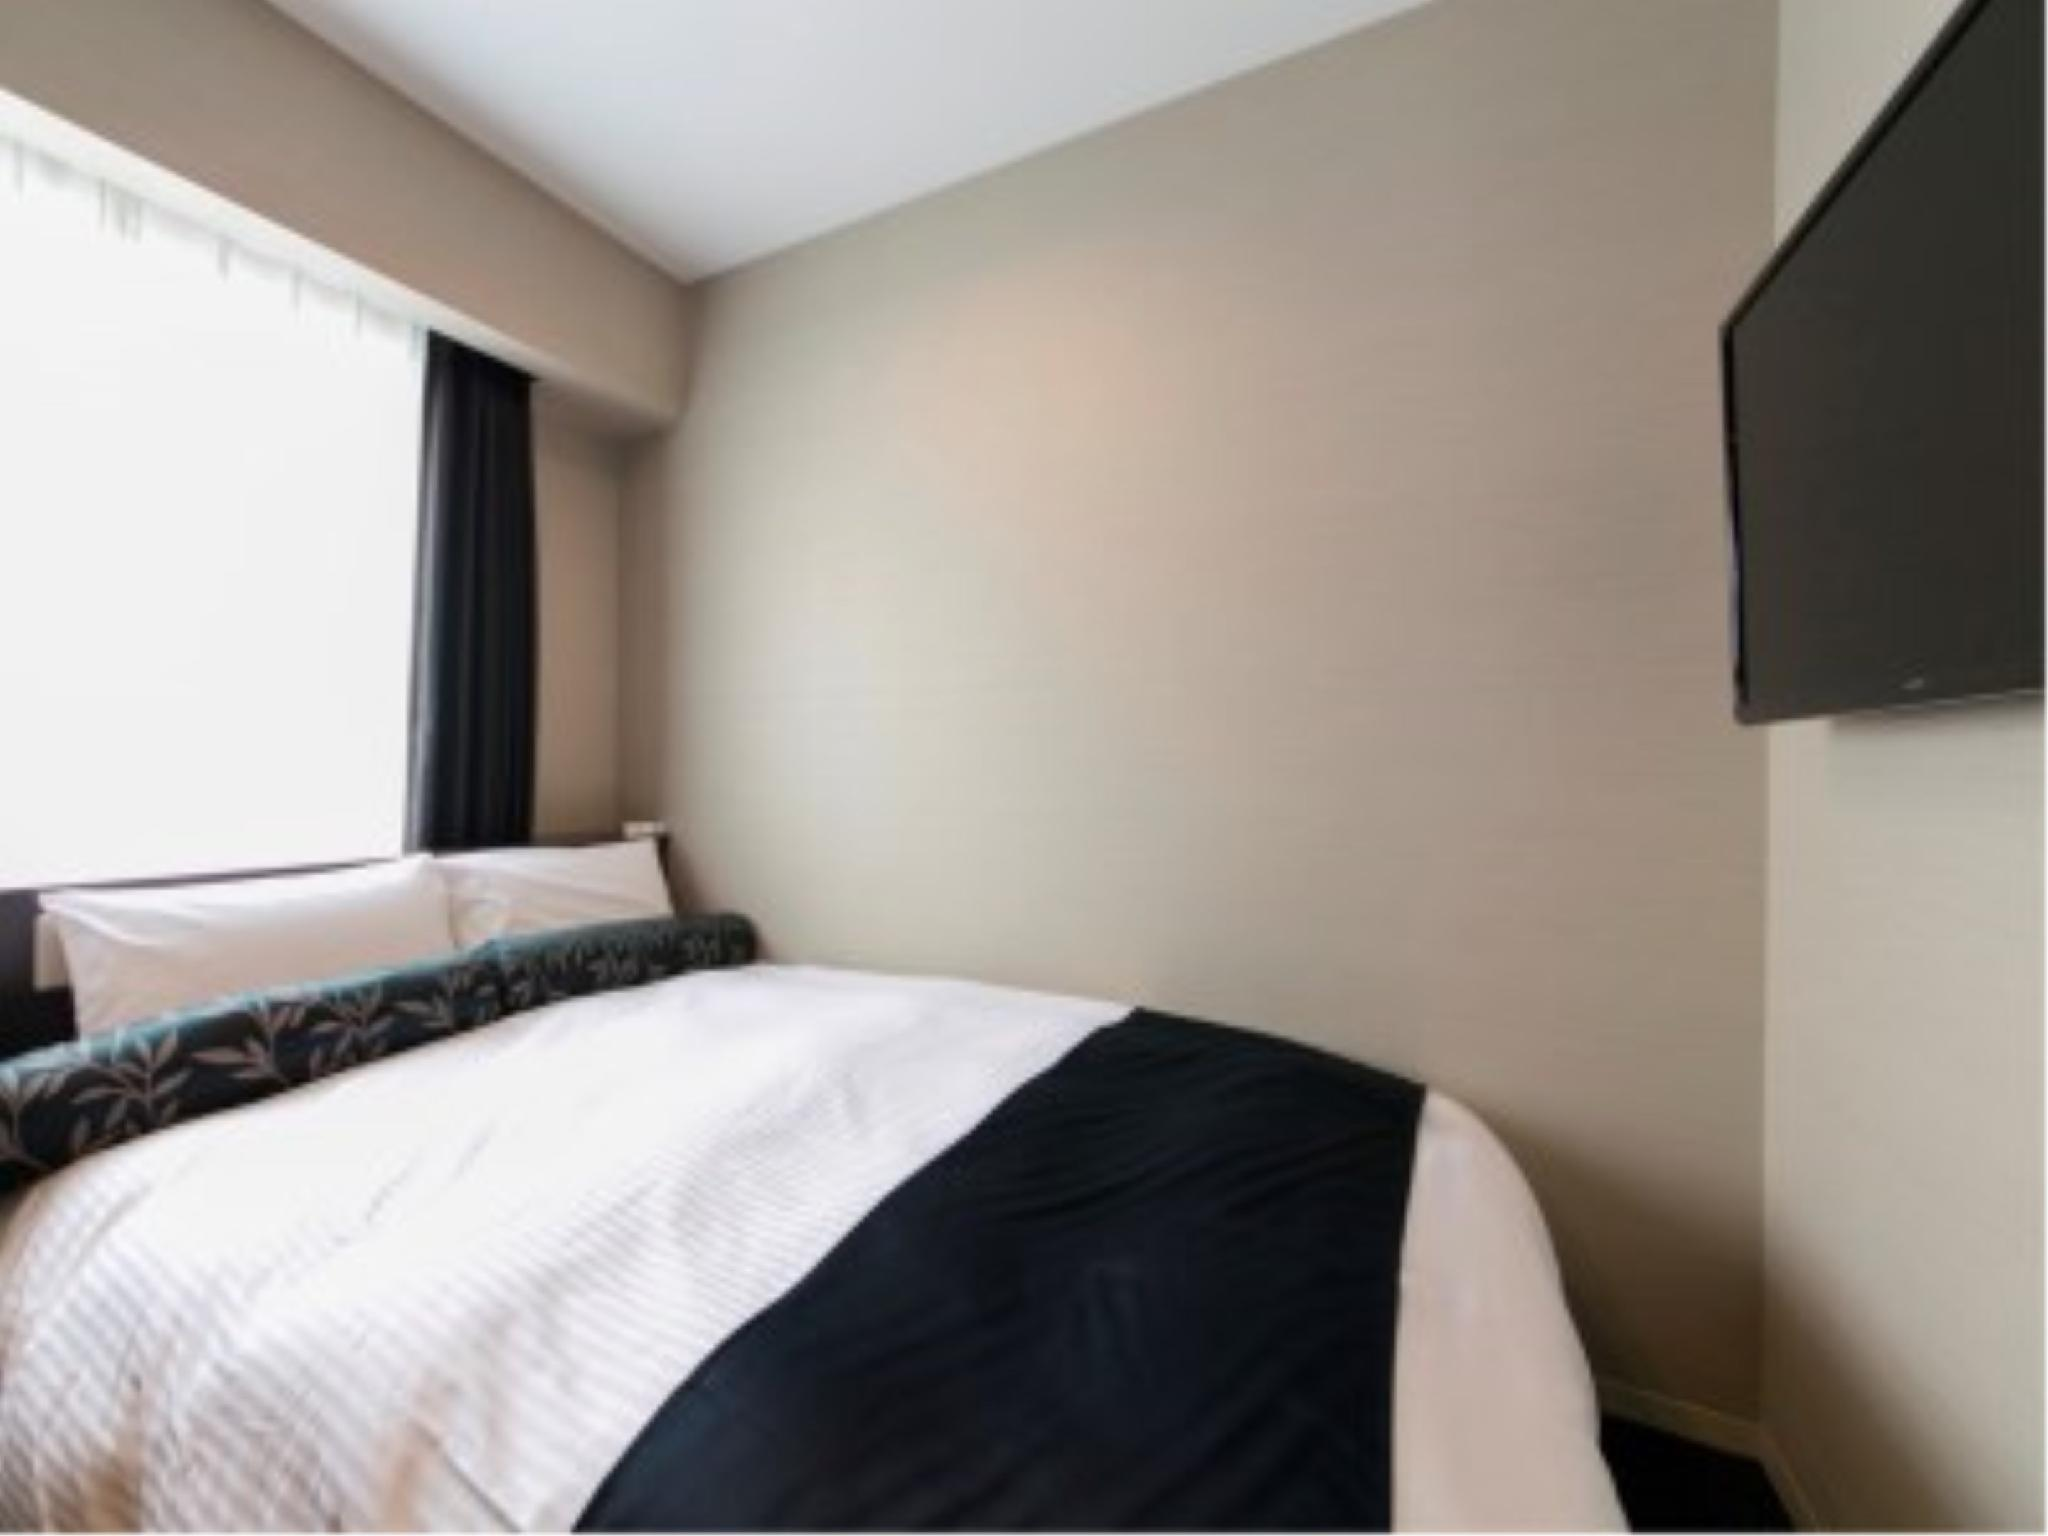 Premium Double Room (Max 3 Guests *Up to 2 Adult Guests)